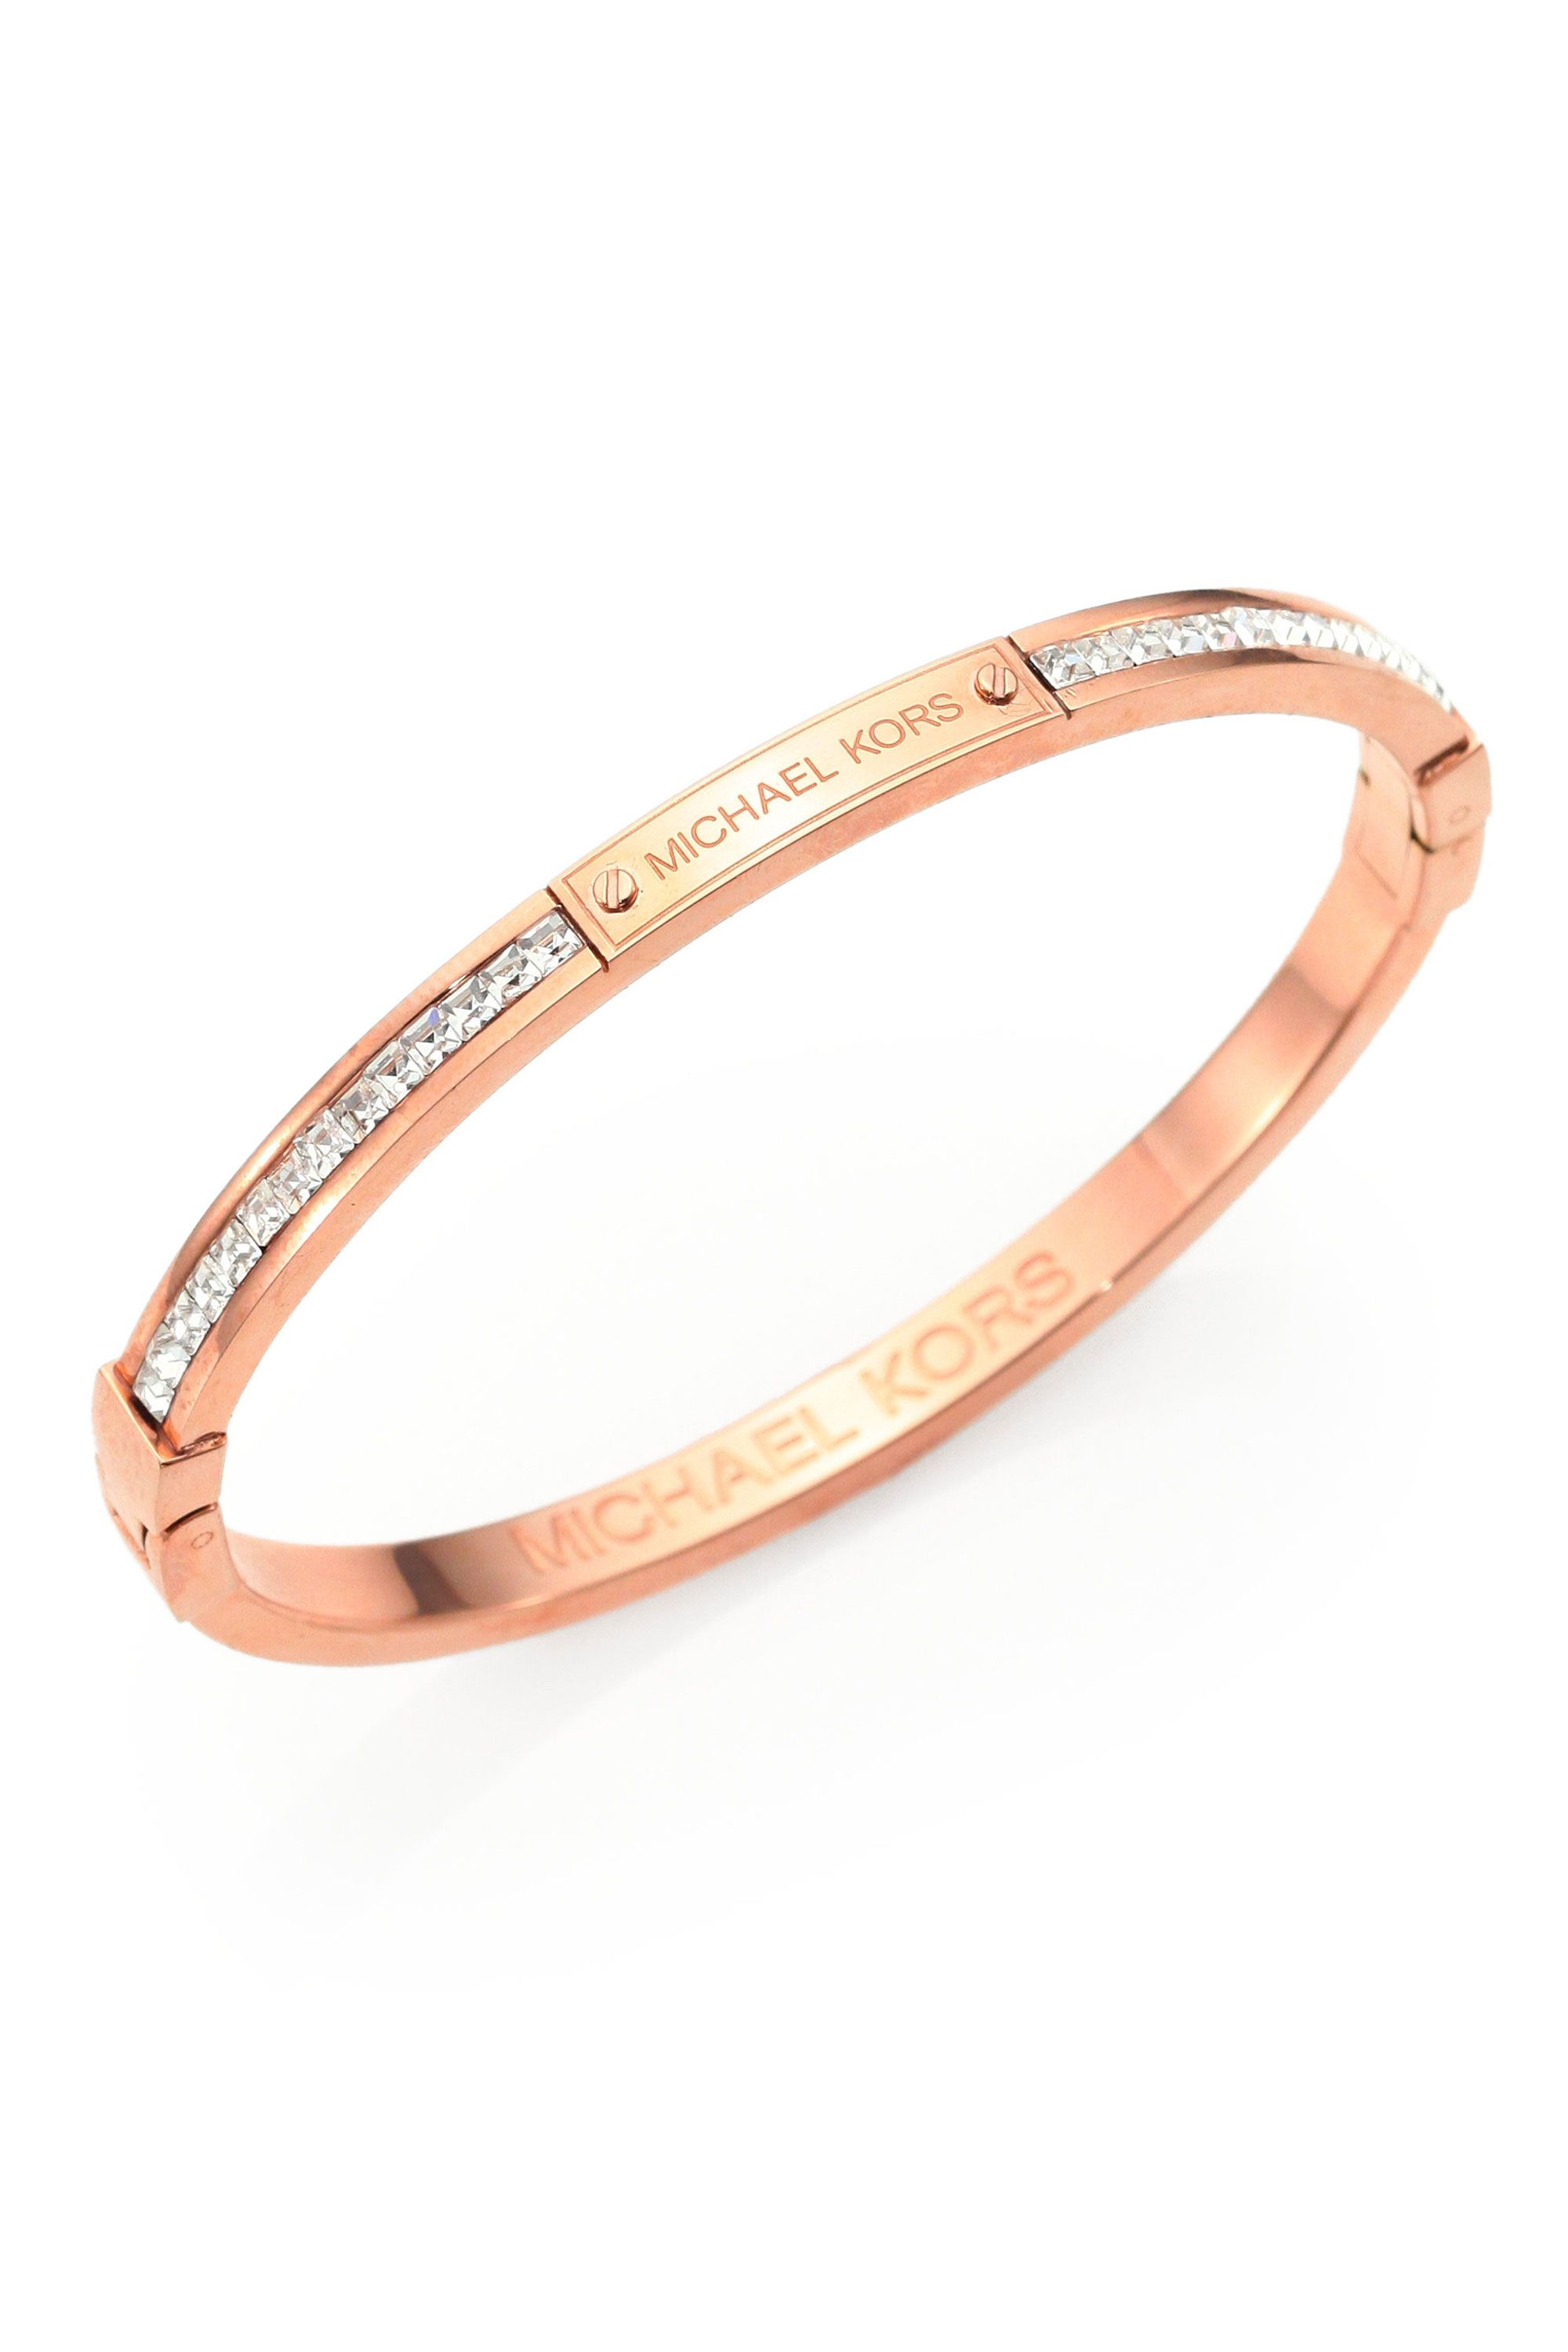 canadiandiamond canadian bracelets lugaro bangles bangle rosegoldbangle diamond rosegold jewellery gold rose bracelet